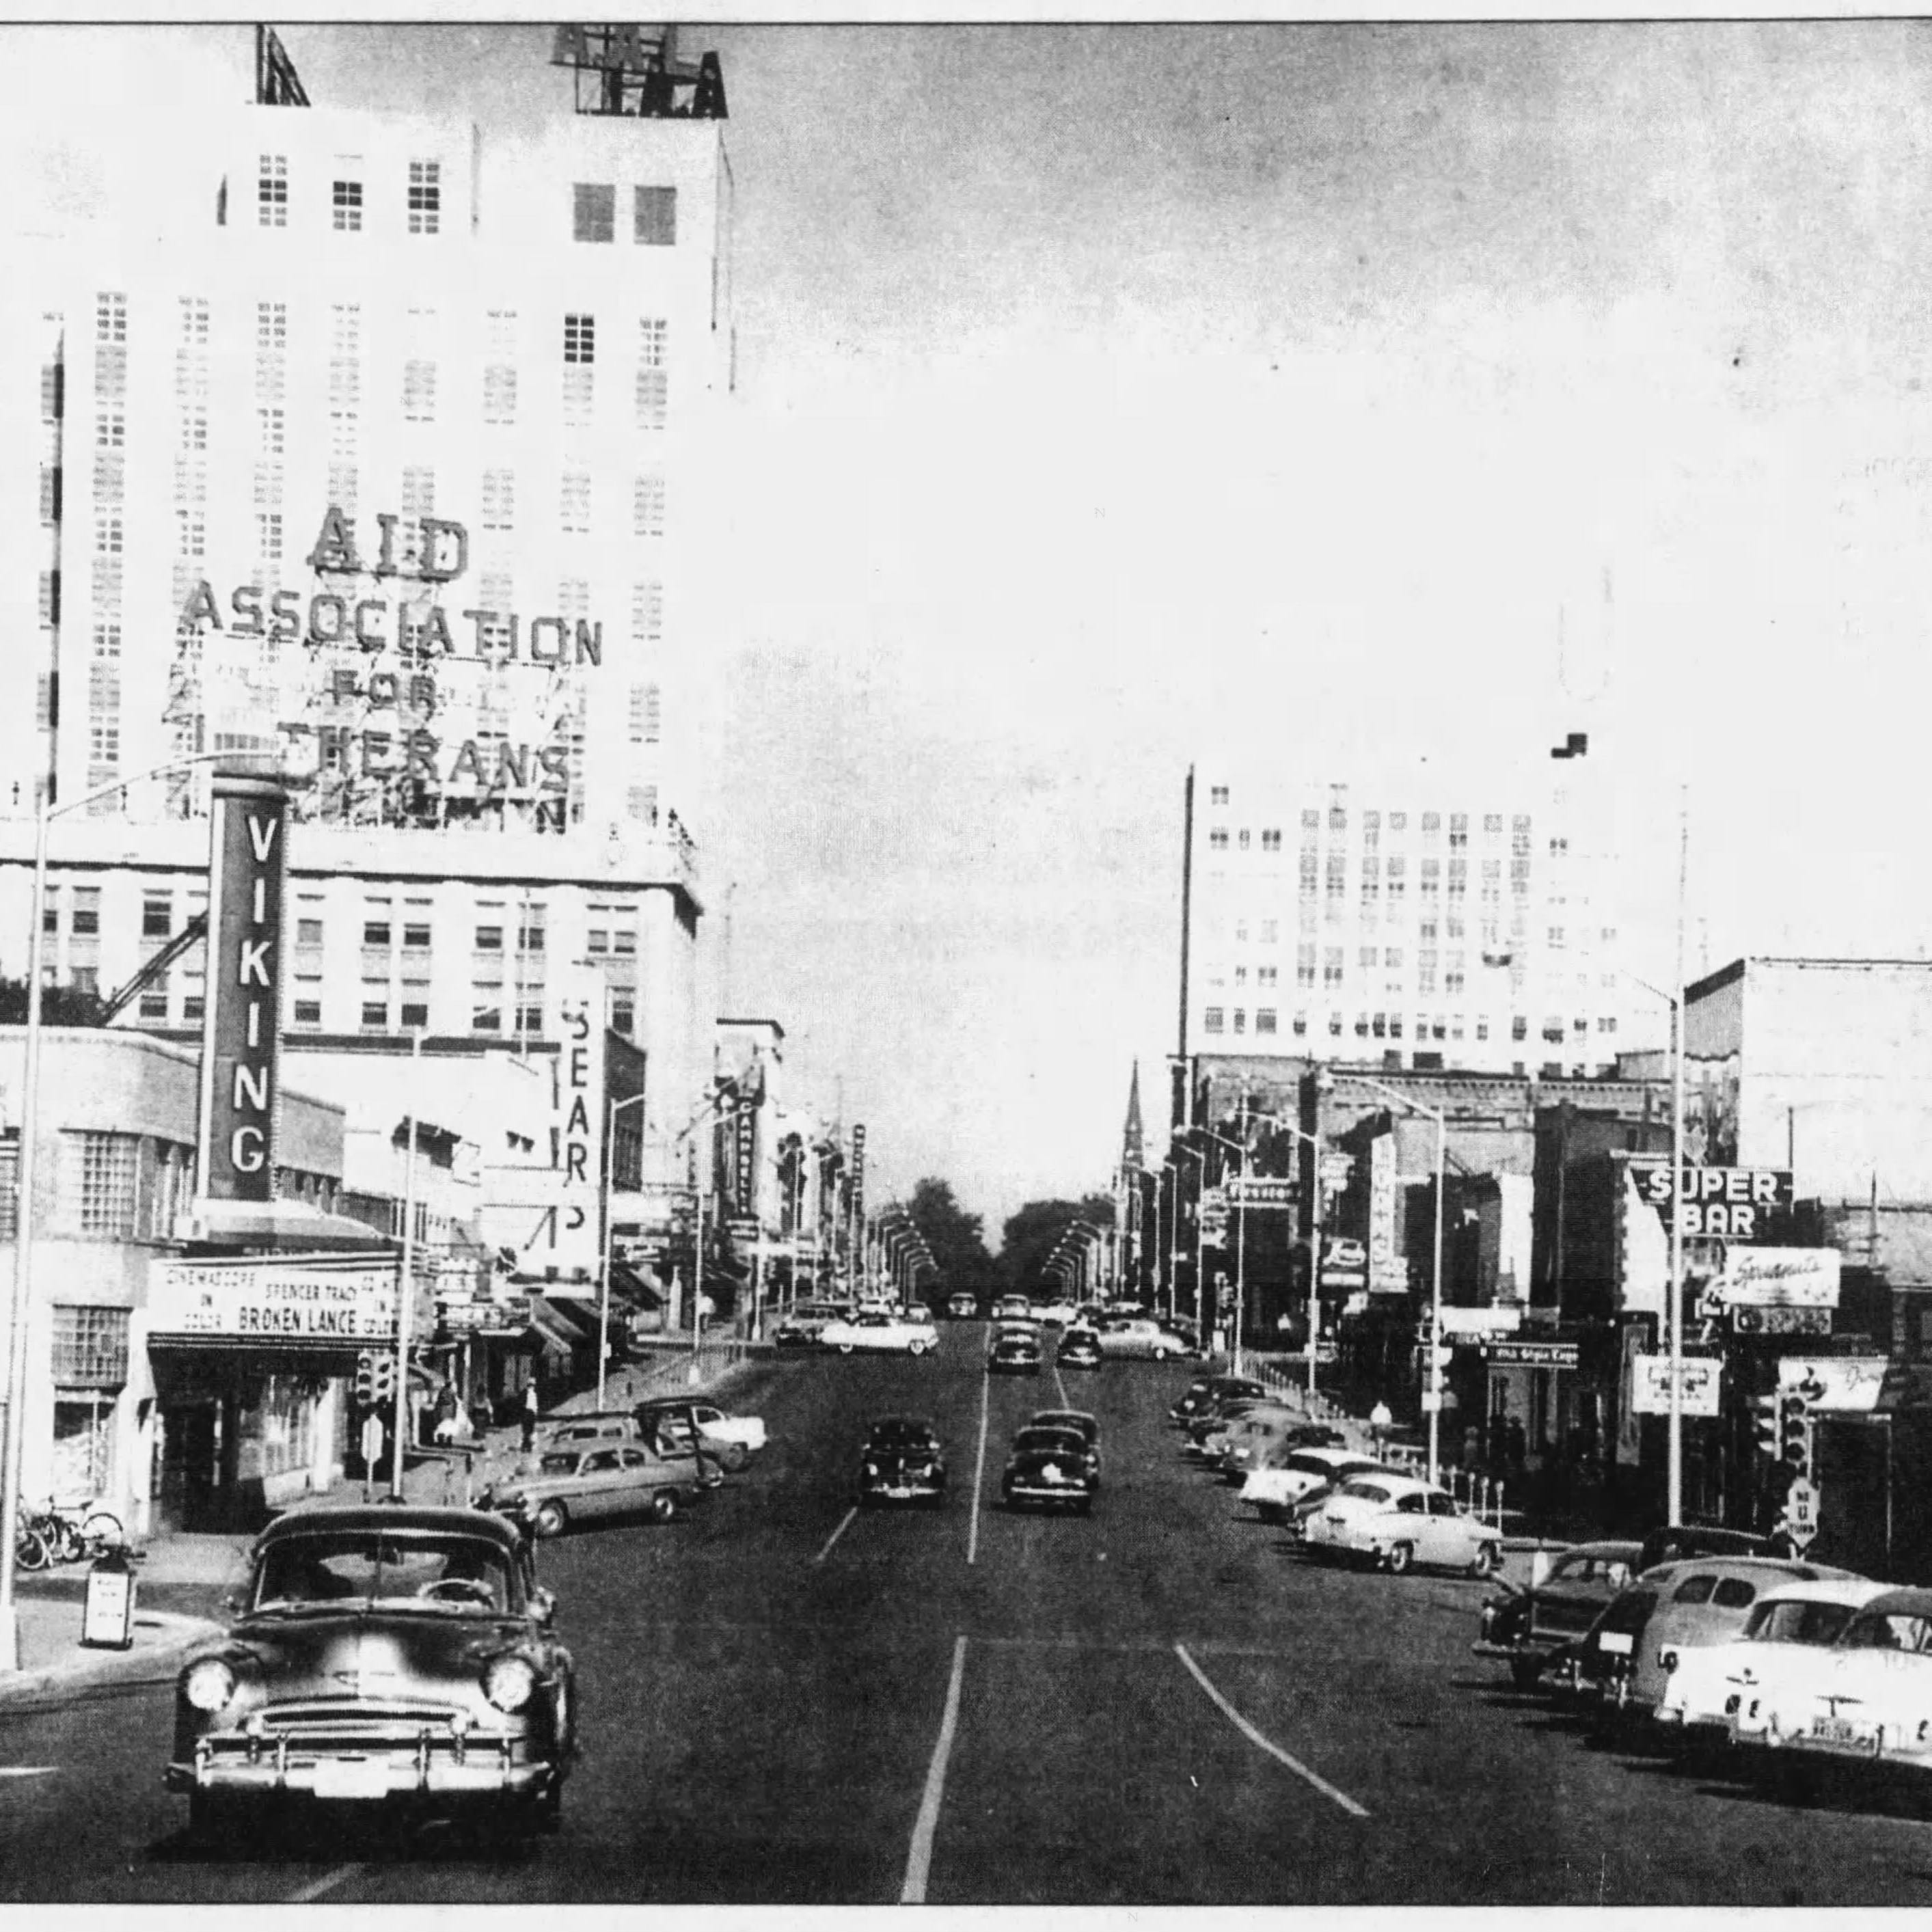 A look at College Avenue in the 1950s. The Viking Theater is on the left. Spudnut Coffee Shop is on the right.